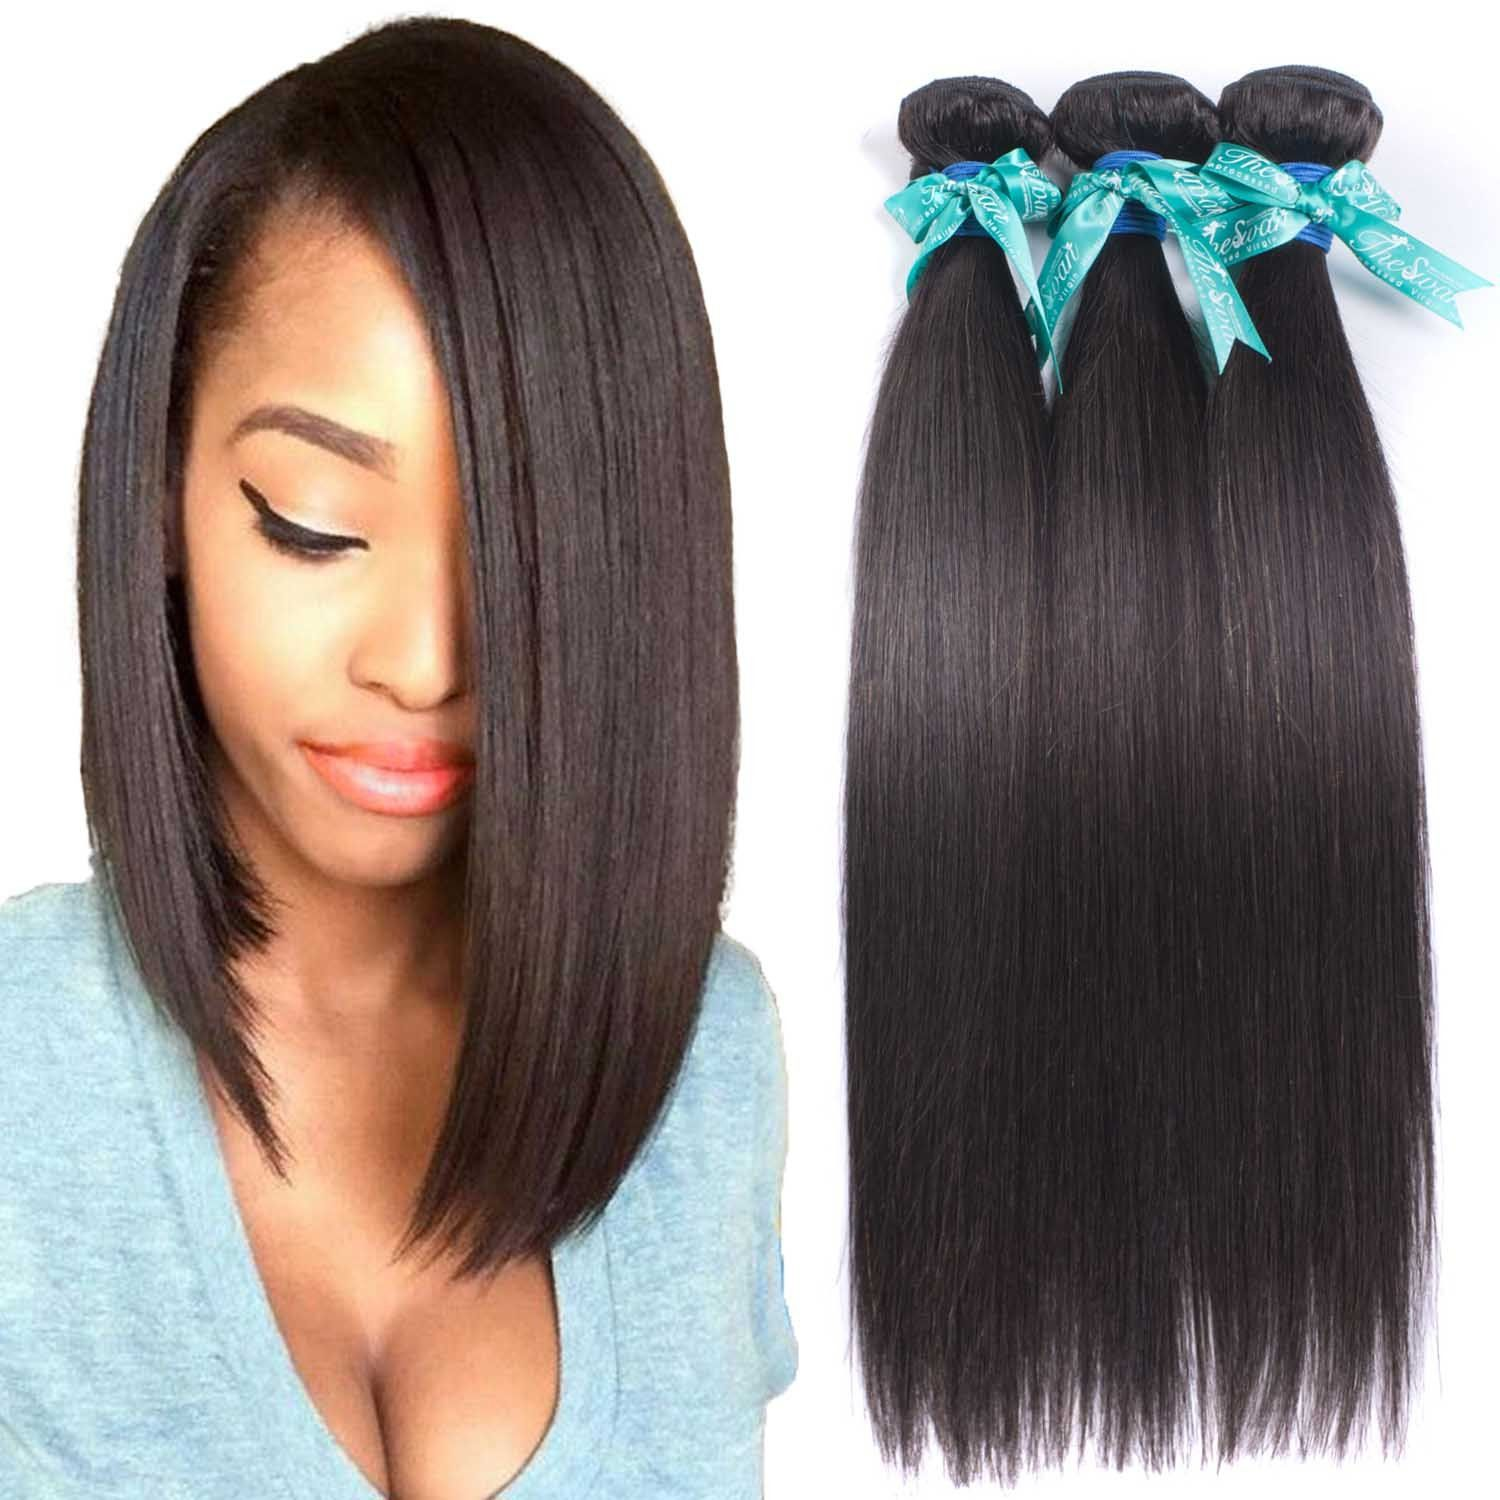 Swan 7a Straight Brazilian Hair 3 Bundles Hair Extensions Real Human